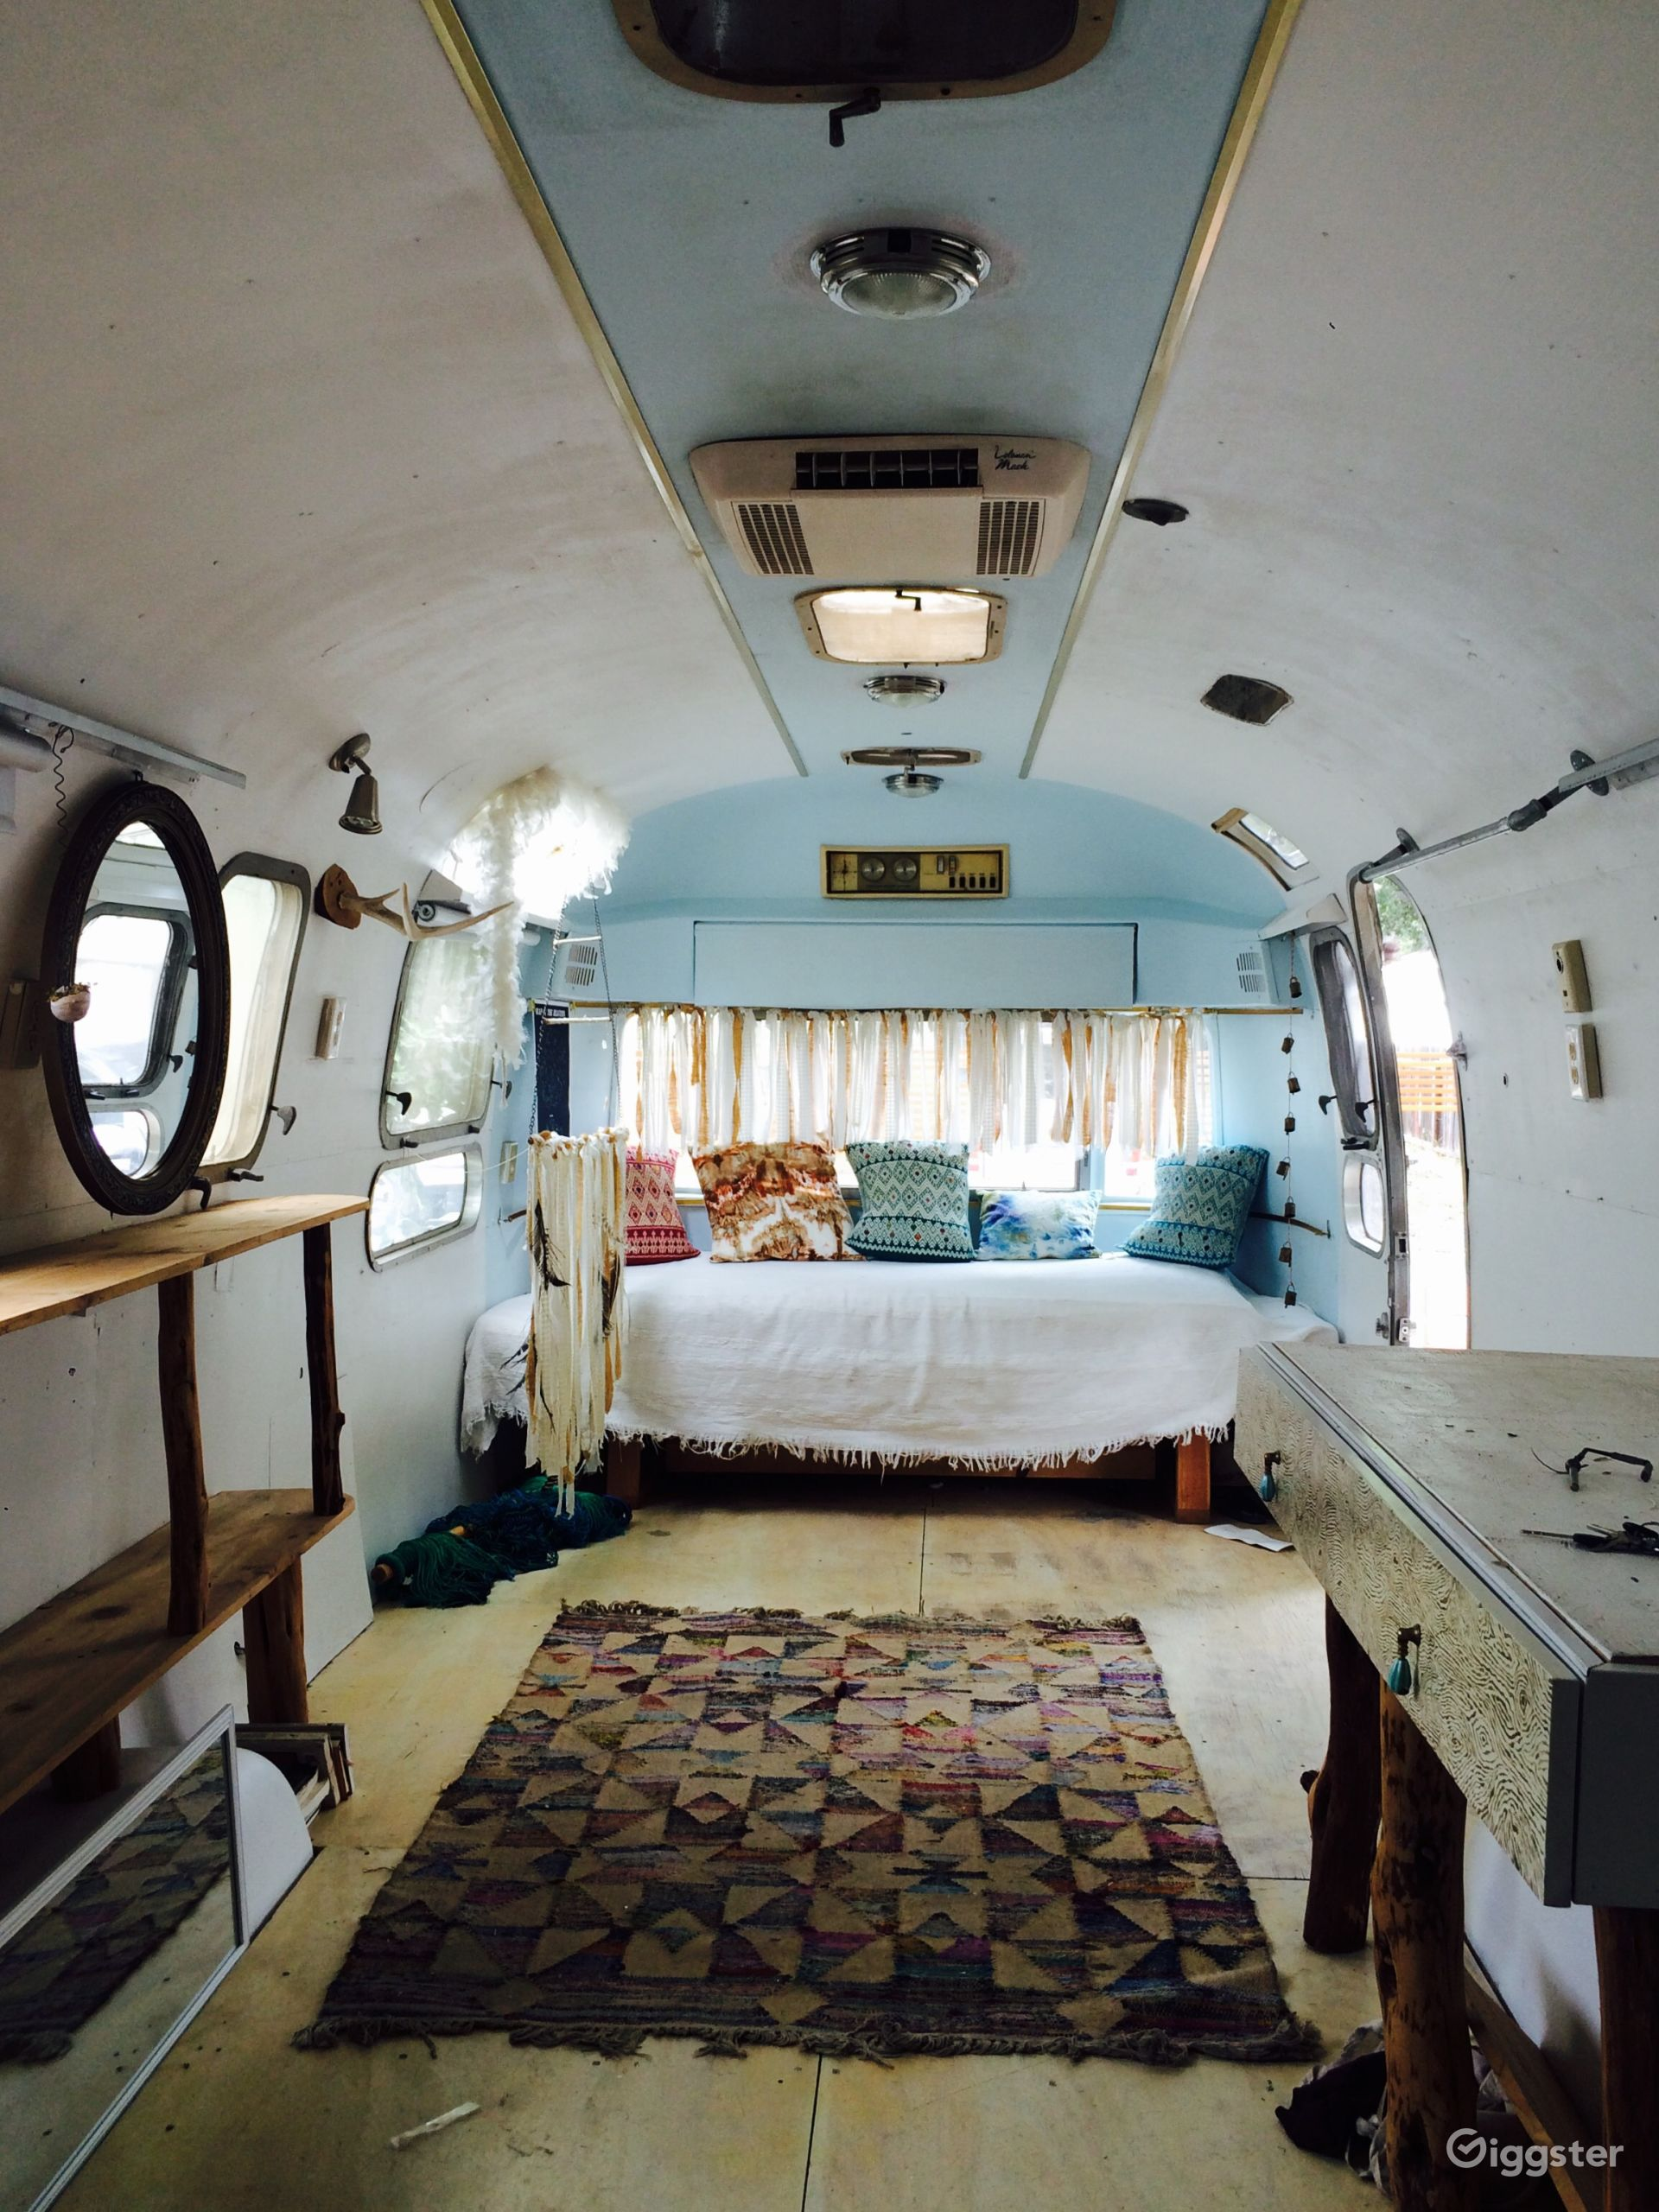 """""""The Sunstream"""" is a vintage fully restored Airstream trailer that we will bring it to you on location, set it up for use and take it away when finished."""